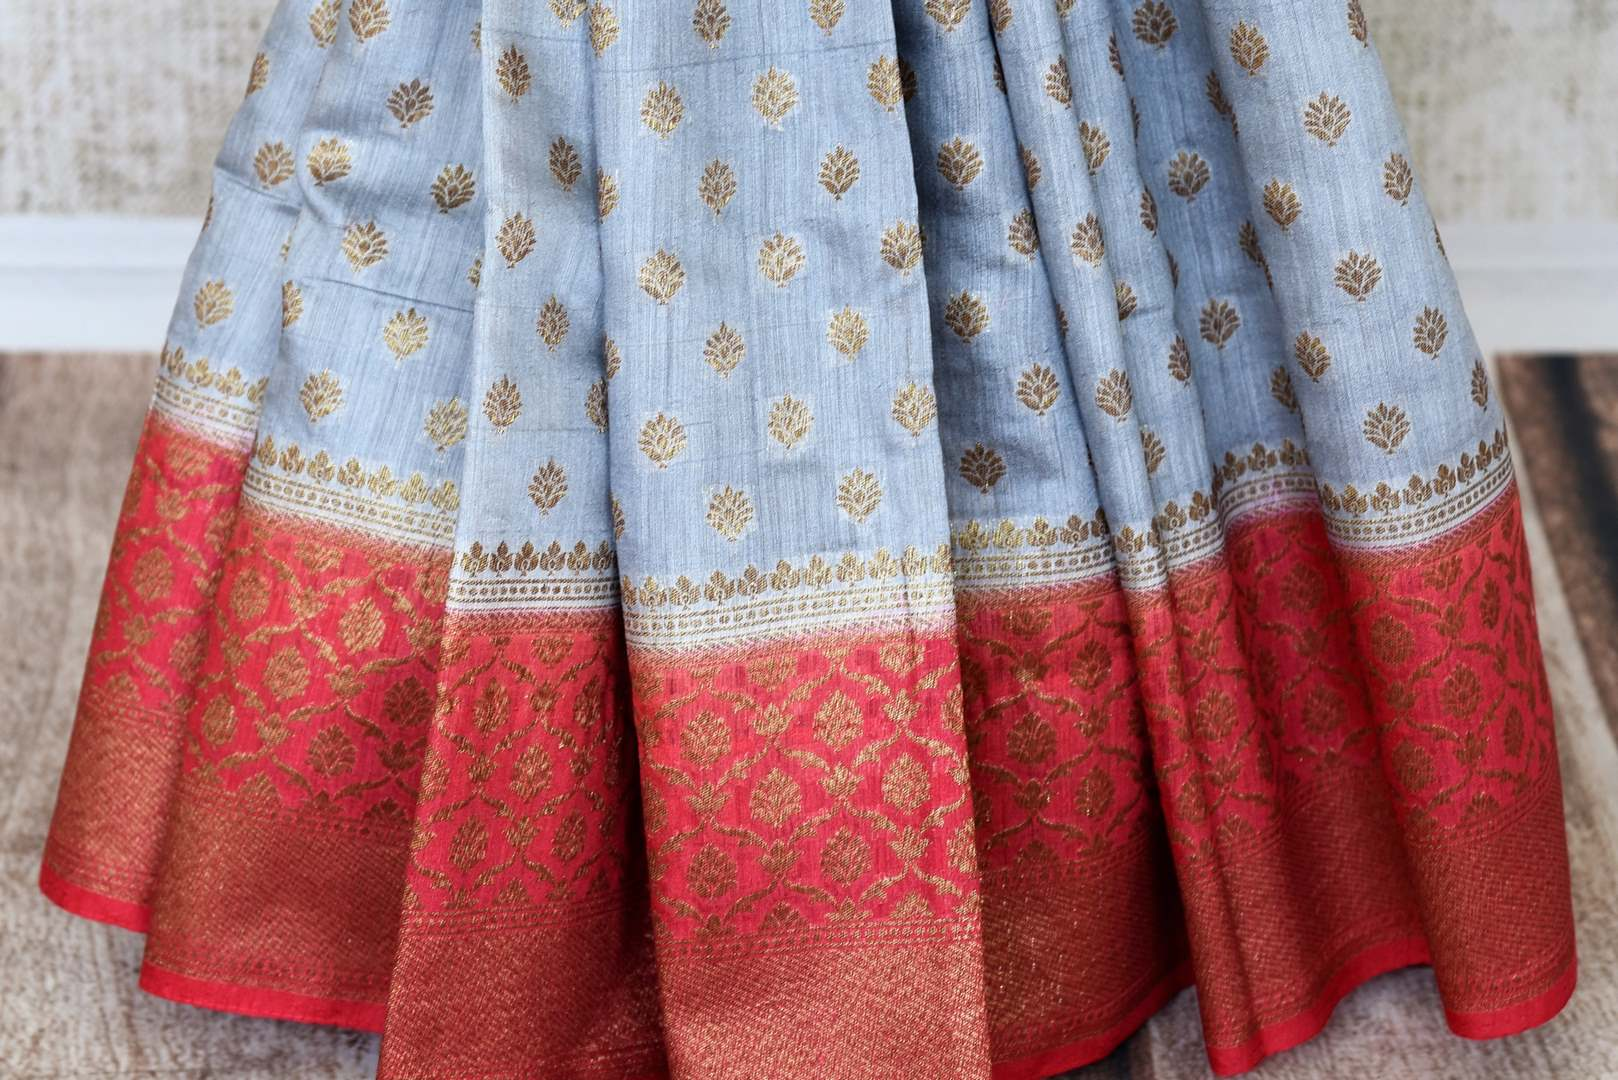 Satiate your dreamy appetite with this stunning grey tussar banarsi silk saree. It comes with a gold zari detailing on the deep red handwoven border. Style this saree with a pretty contrasting red blouse to make quite a statement. Shop designer embroidered sari online or visit Pure Elegance store, USA.-pleats